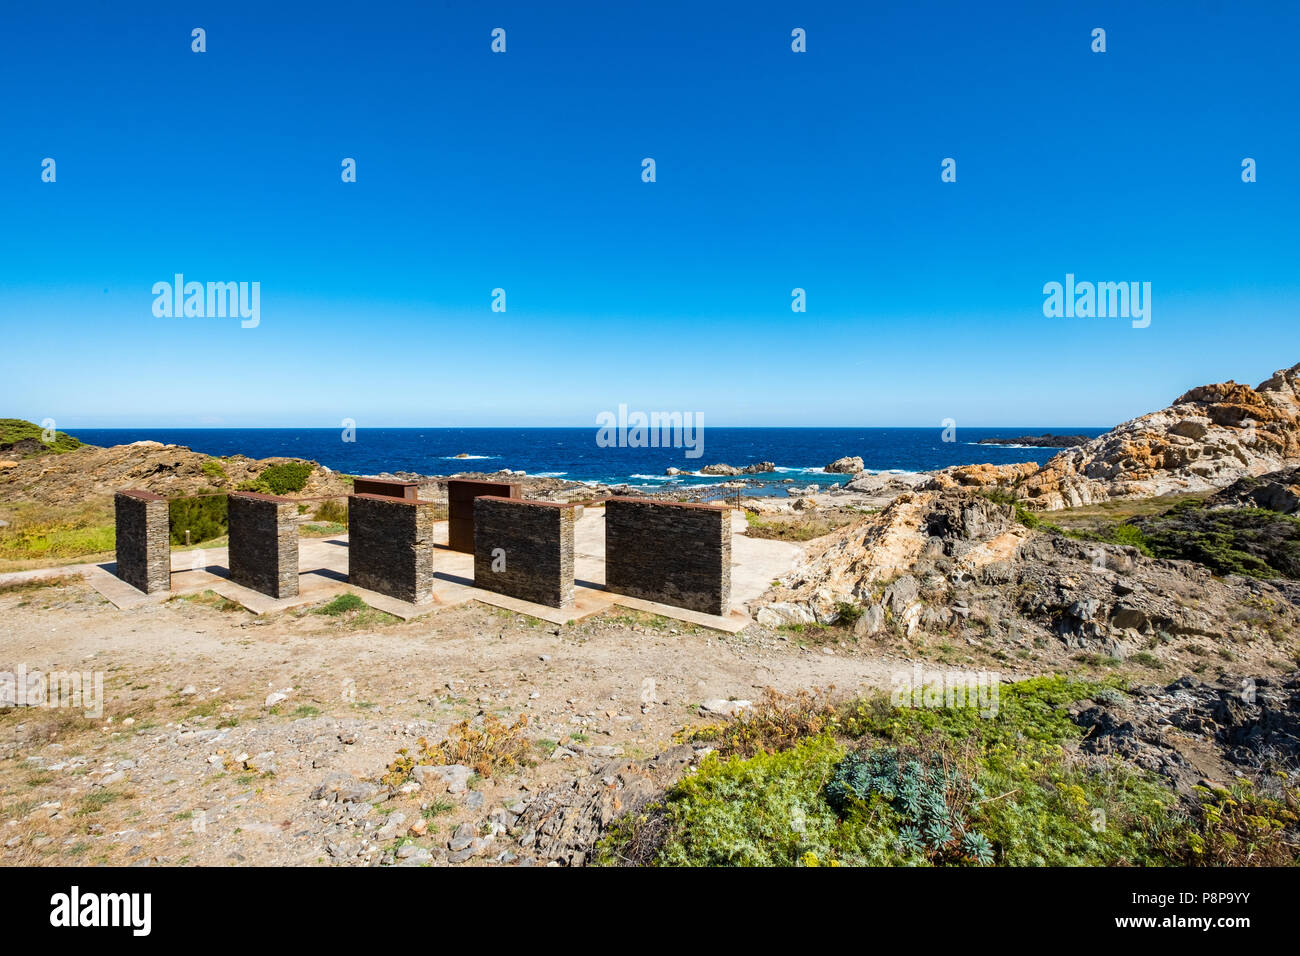 In Cap De Creus A Club Med Was Deconstructed With The Idea Of Recovering The Landscape Of This Part Of The Costa Brava In Its Place Small Intervent Stock Photo Alamy